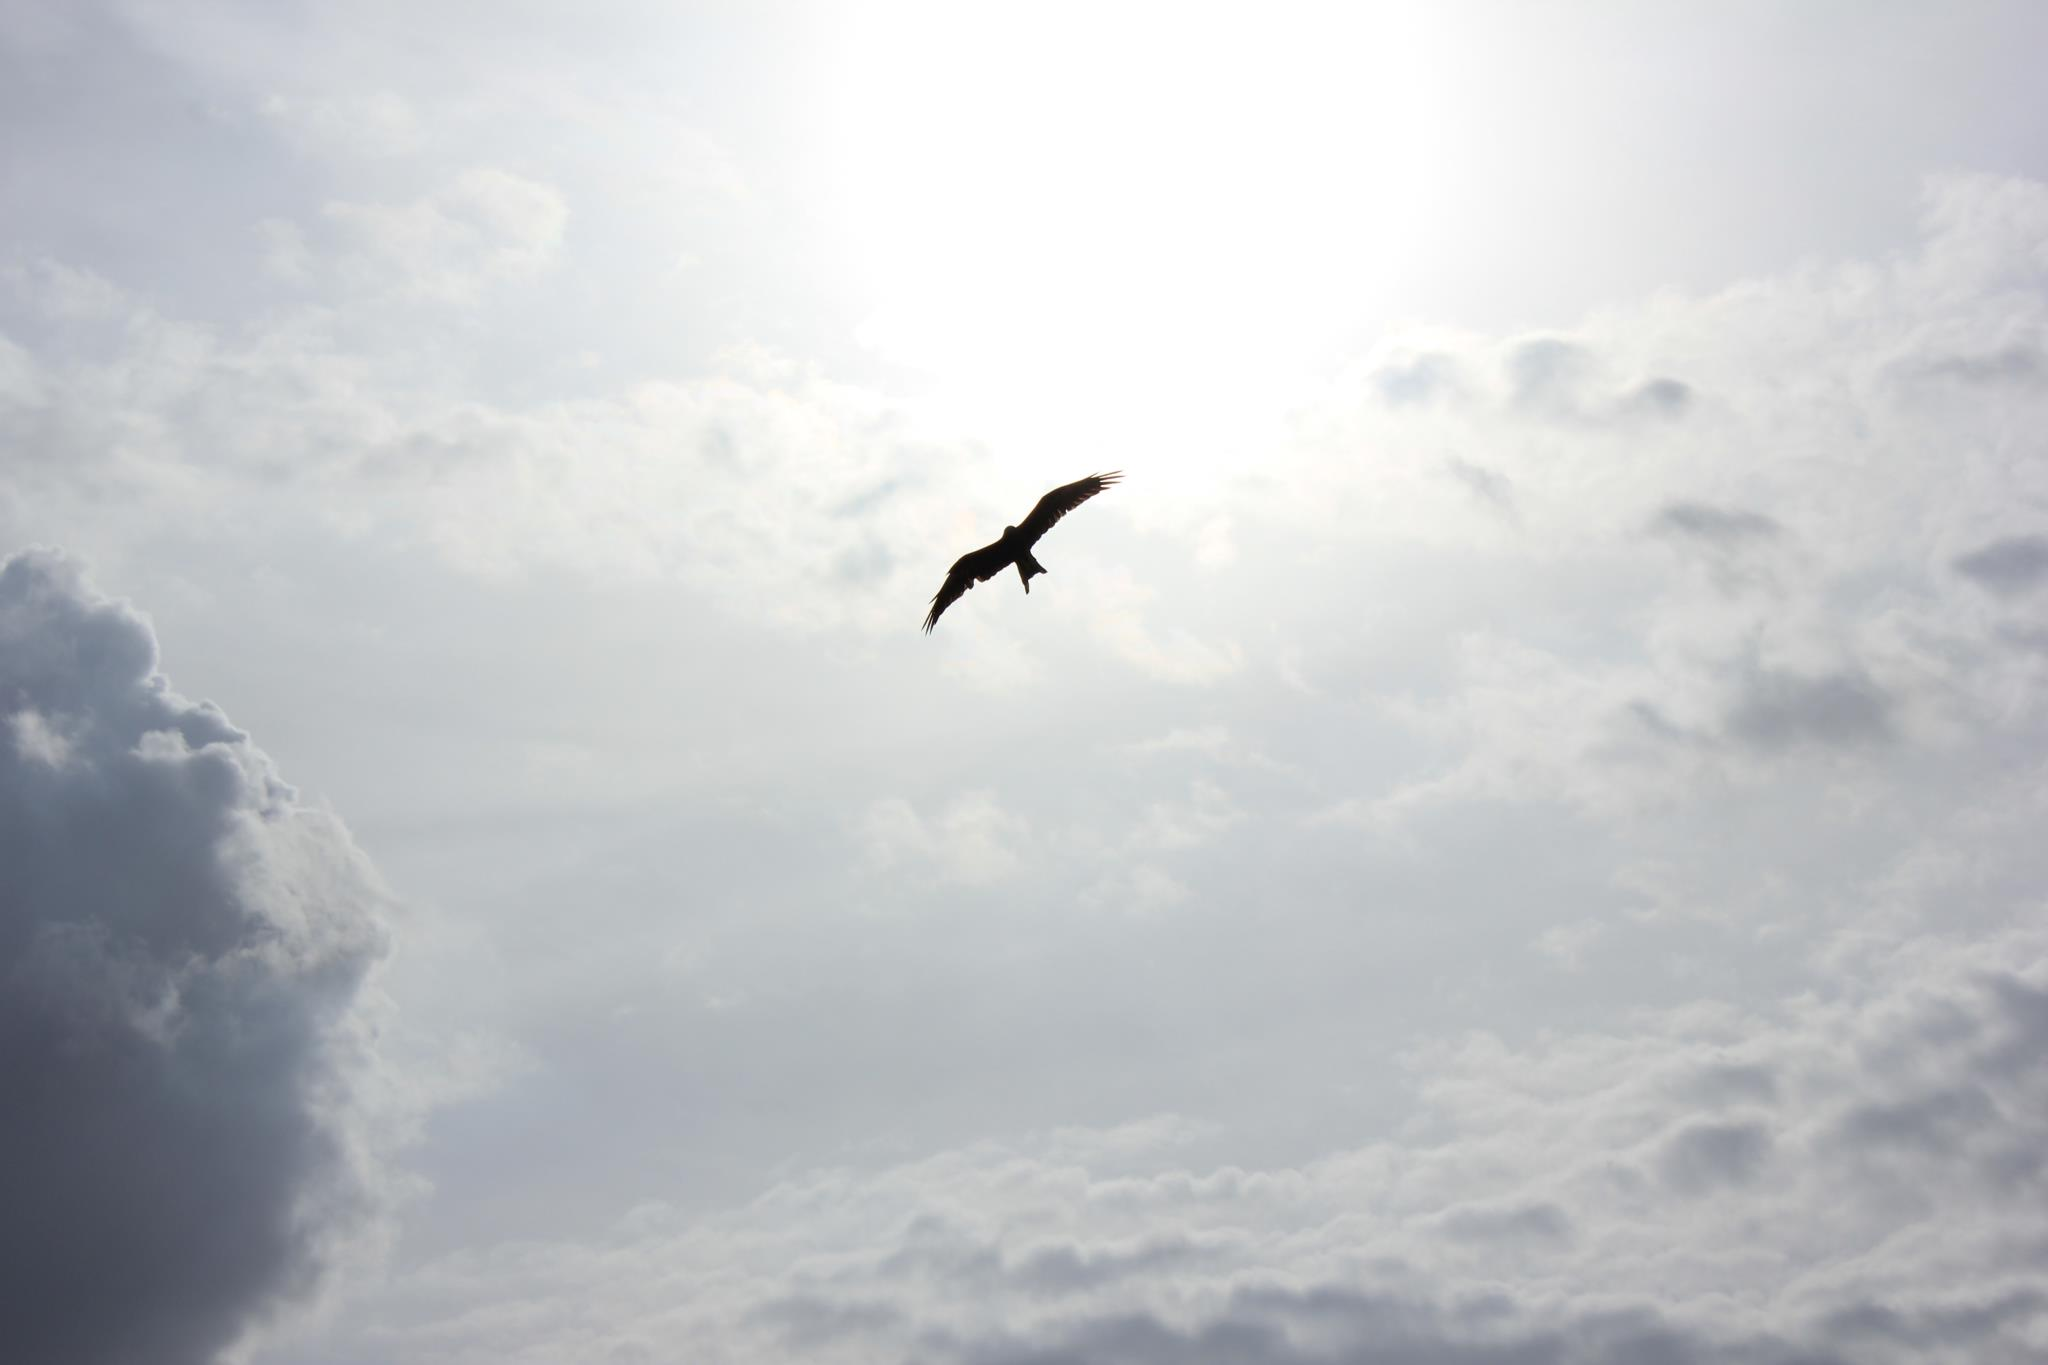 A bird soaring in a sunny sky with clouds